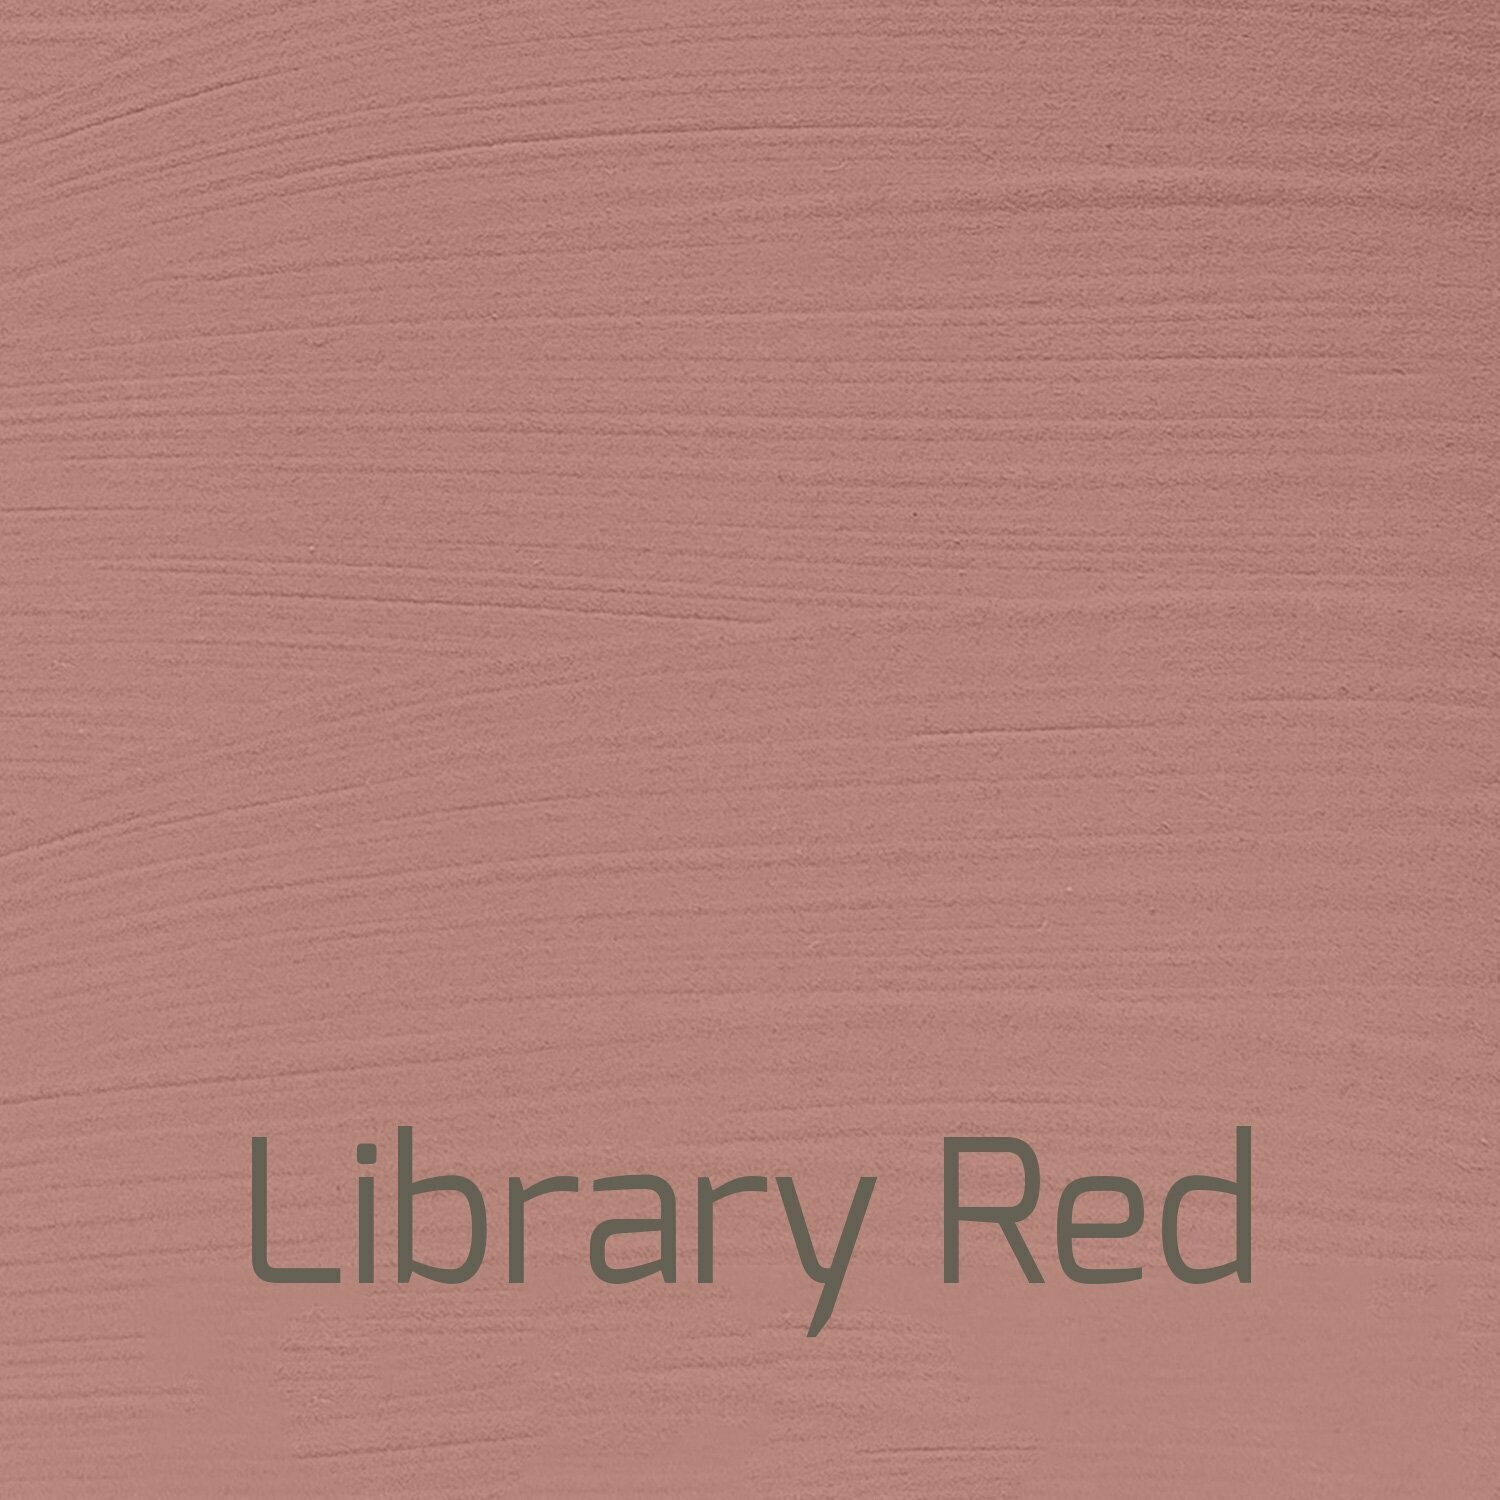 Library Red